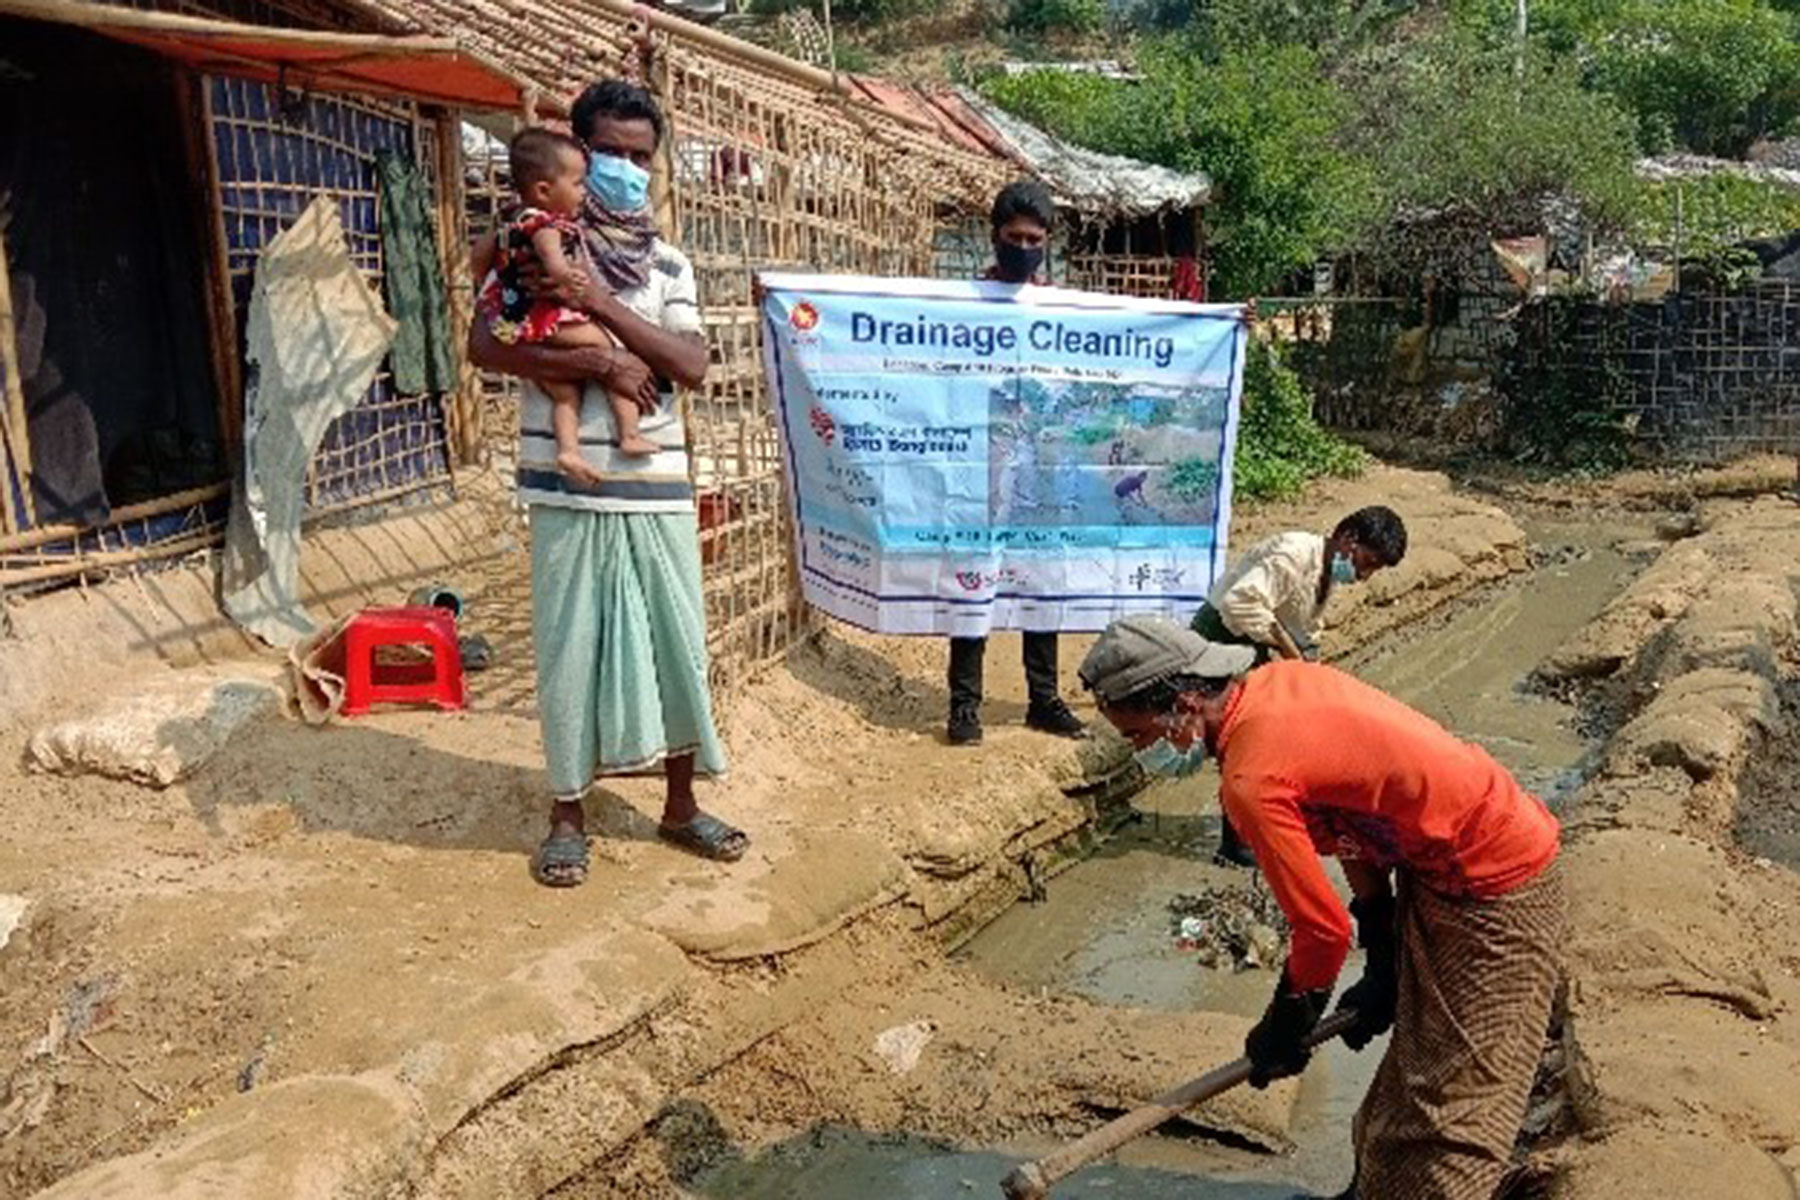 """""""There is a drainage right behind my house. During monsoon, the drainage line overflows due to clogging, and wastewater enters my house. RDRS Bangladesh supported the cleaning of these drains which from now on will keep my family, especially my children, safe from the dirty water and the diseases it brings,"""" said Abdul Malek (image)."""